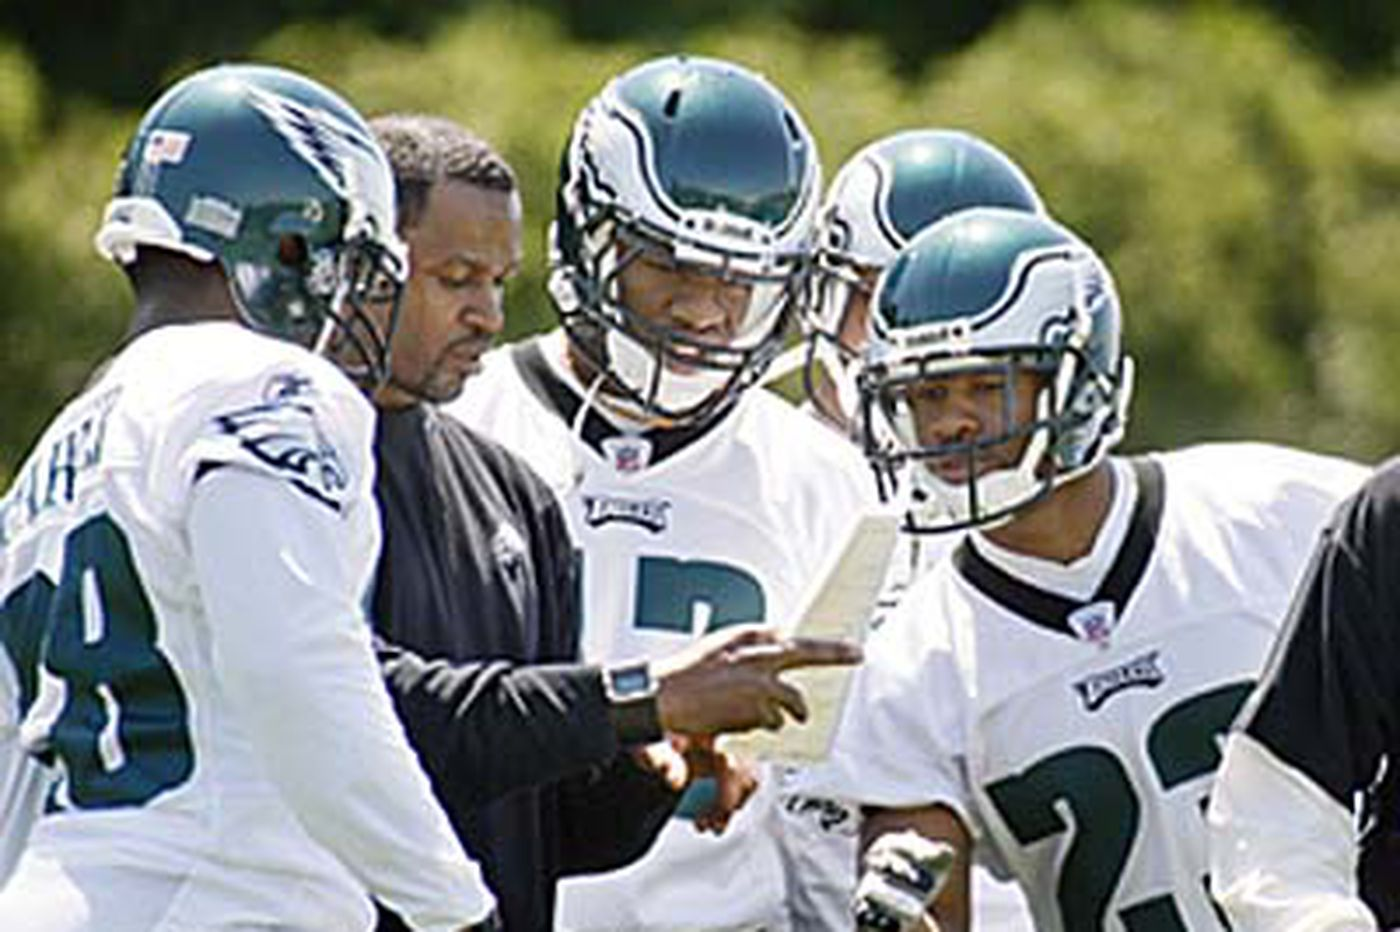 Eagles assistant coach Otis Smith no longer with team